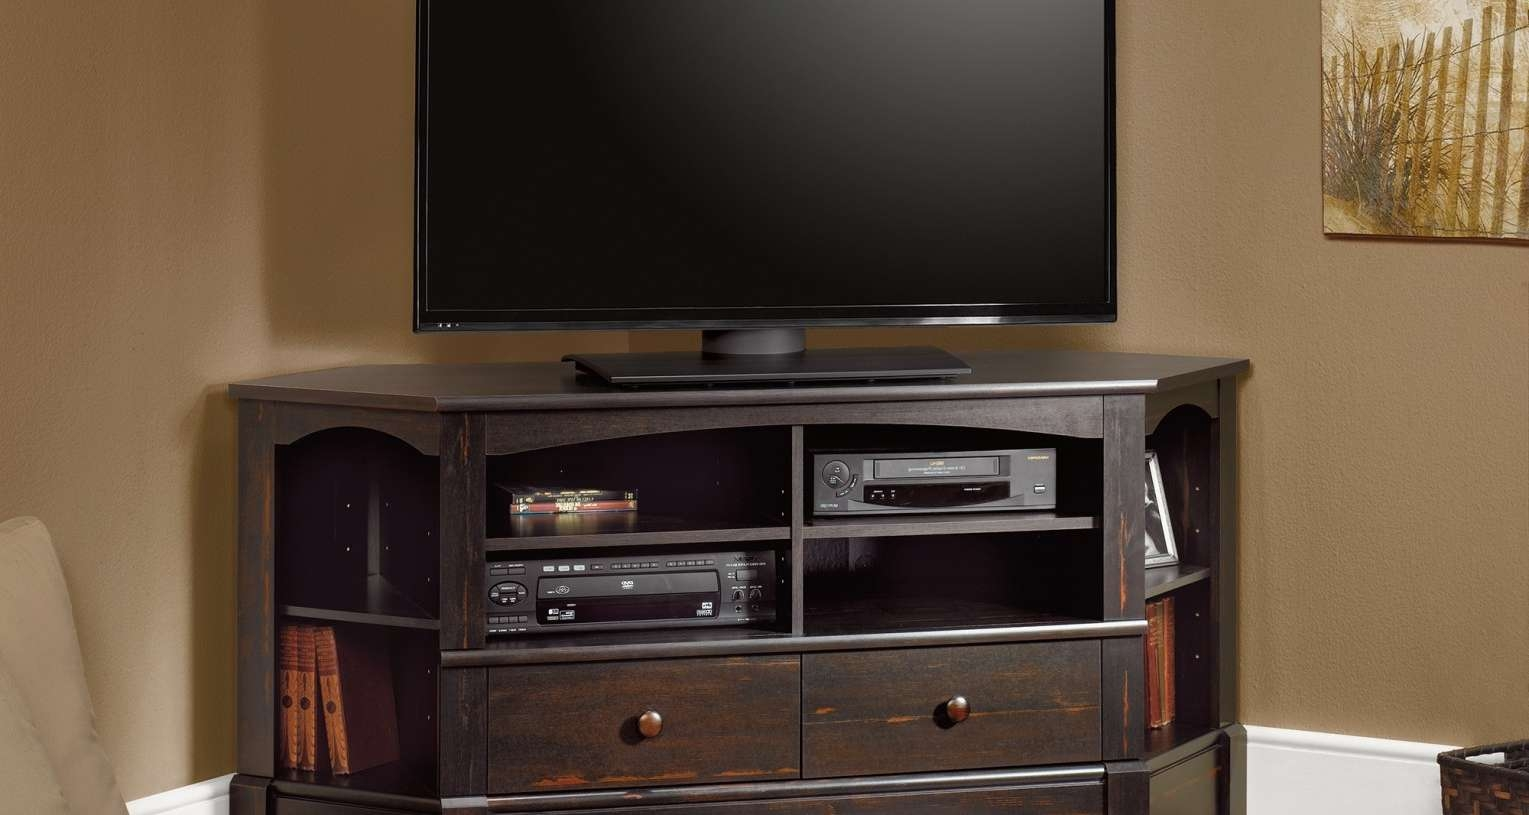 Cabinet : Black Mahogany Wood Corner Tv Stand With Storage Shelves Inside Mahogany Corner Tv Cabinets (View 2 of 20)